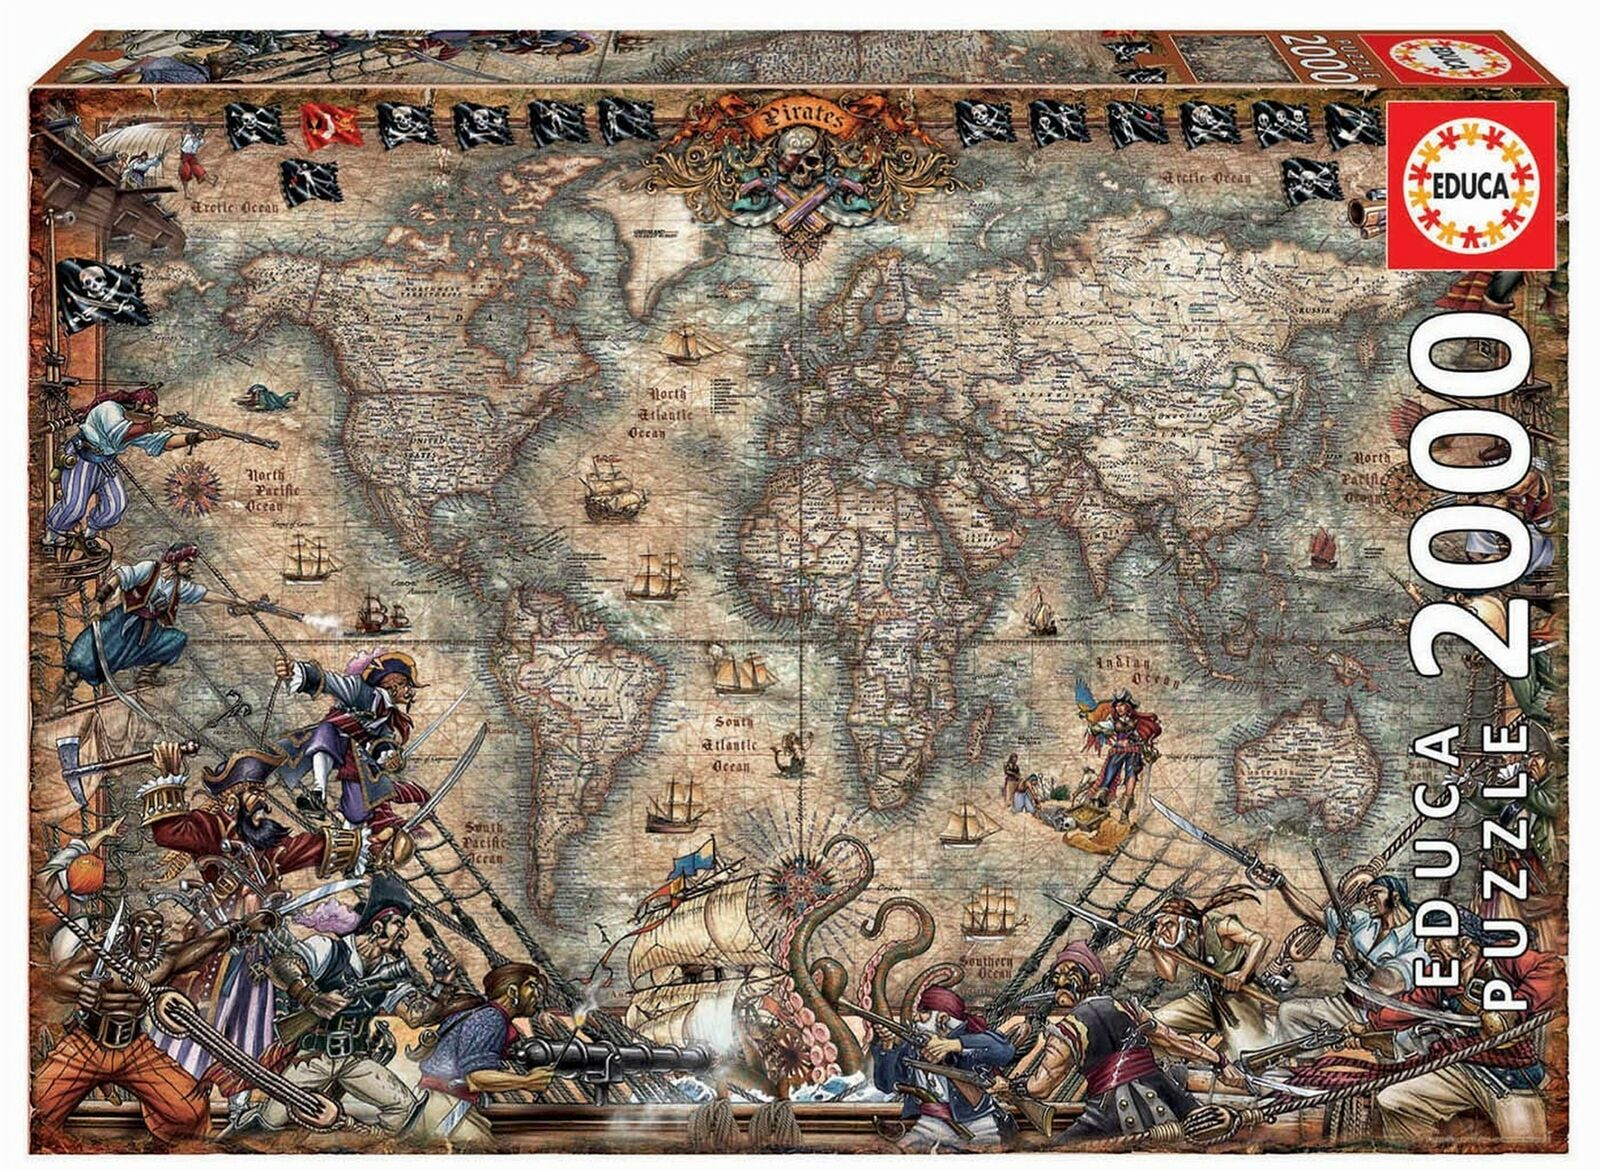 Educa Borrás 18008 Educa Borras Pirate's Pirate's Pirate's Map 2000 Piece Jigsaw Puzzle Multi 87fbb1